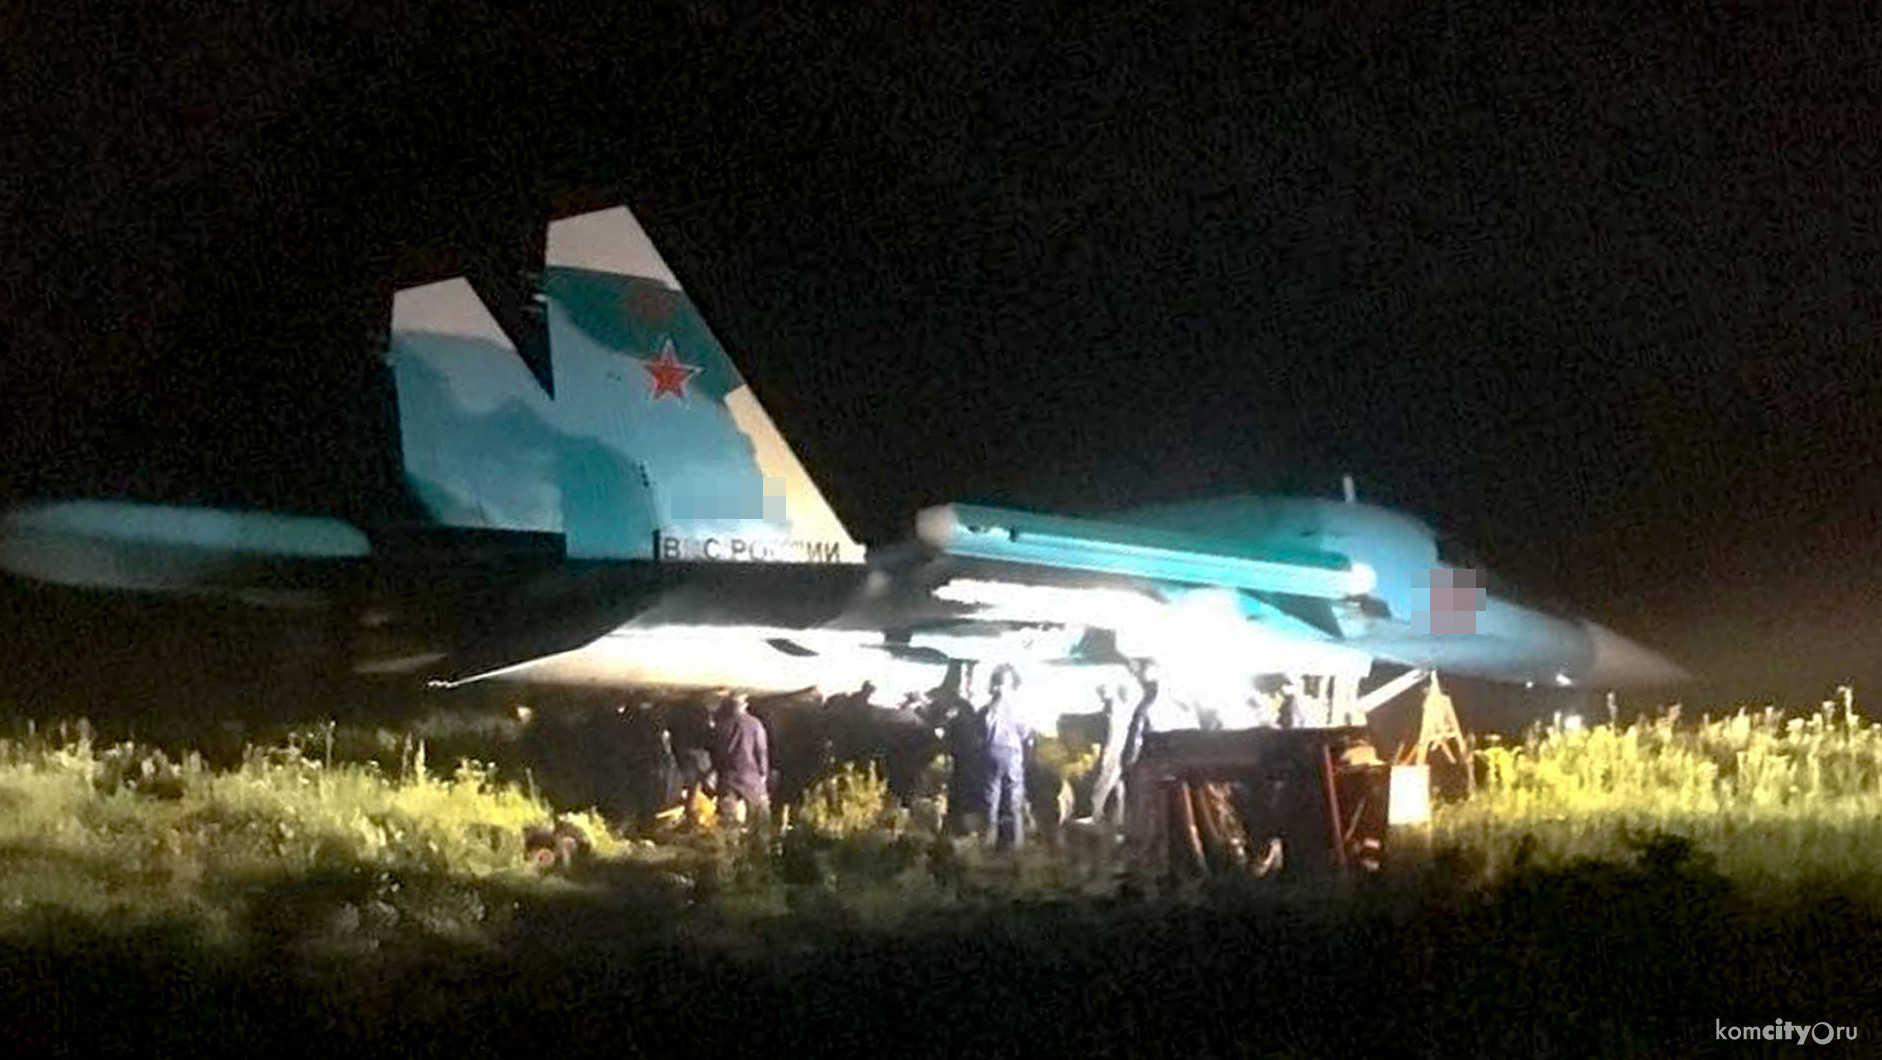 Flight incident with a Su-34 bomber in Khurba Khurba, Vostochny, military, okrug, rolled out, limits, lanes, runway, Affected, Khabarovsk, airplane, airfield, Russian, landing, bomber, front-line, said, present, moment, clarified